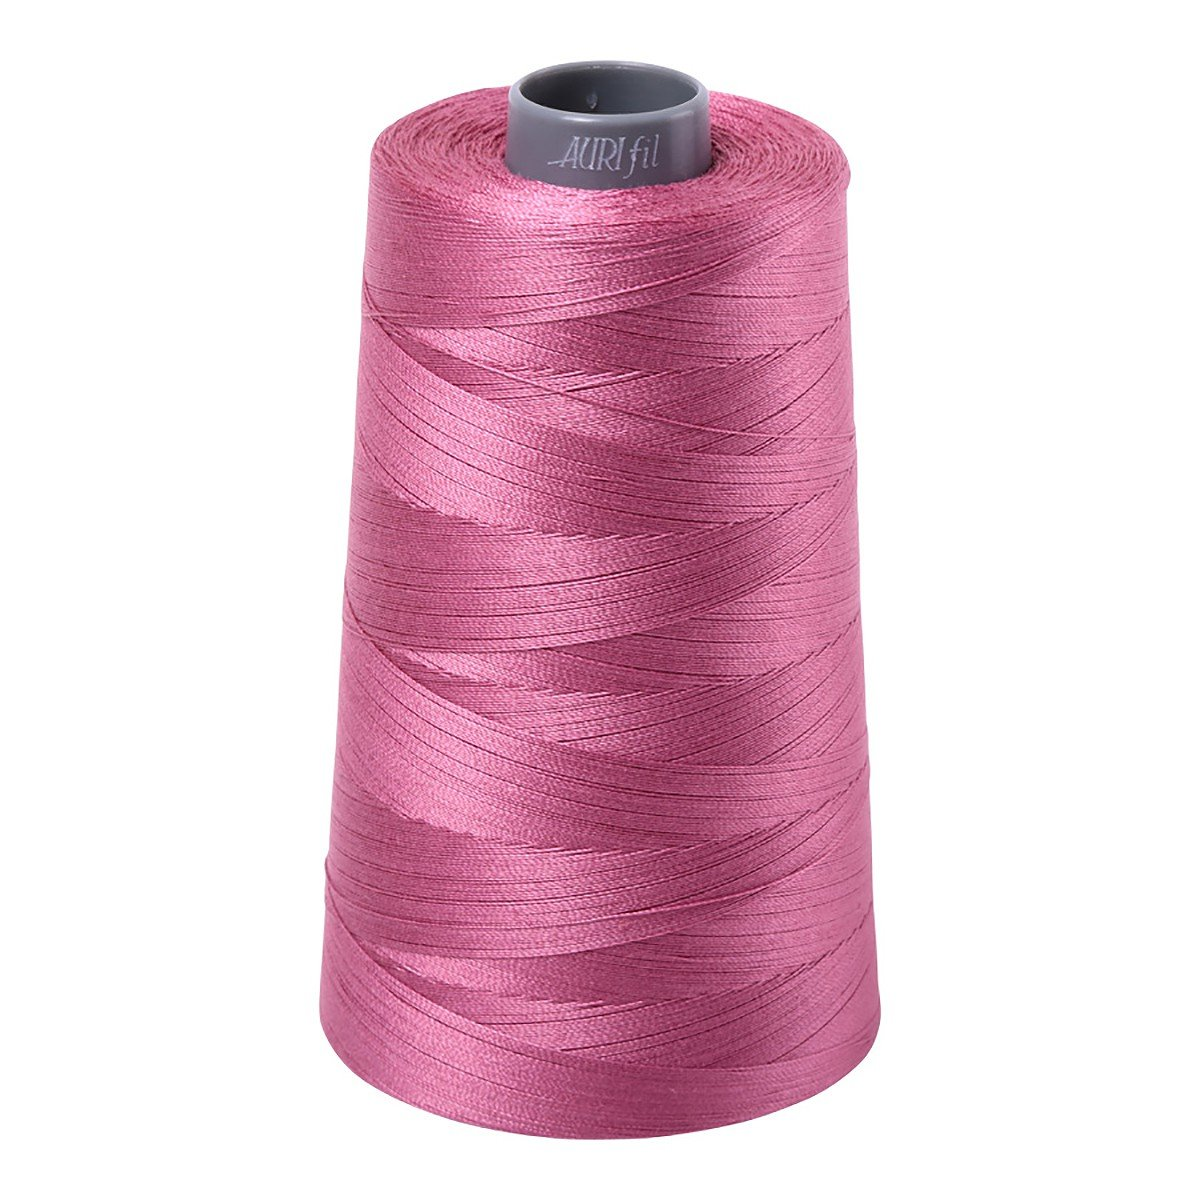 Mako (Cotton) Embroidery Thread 28wt 3609yds Dusty Rose